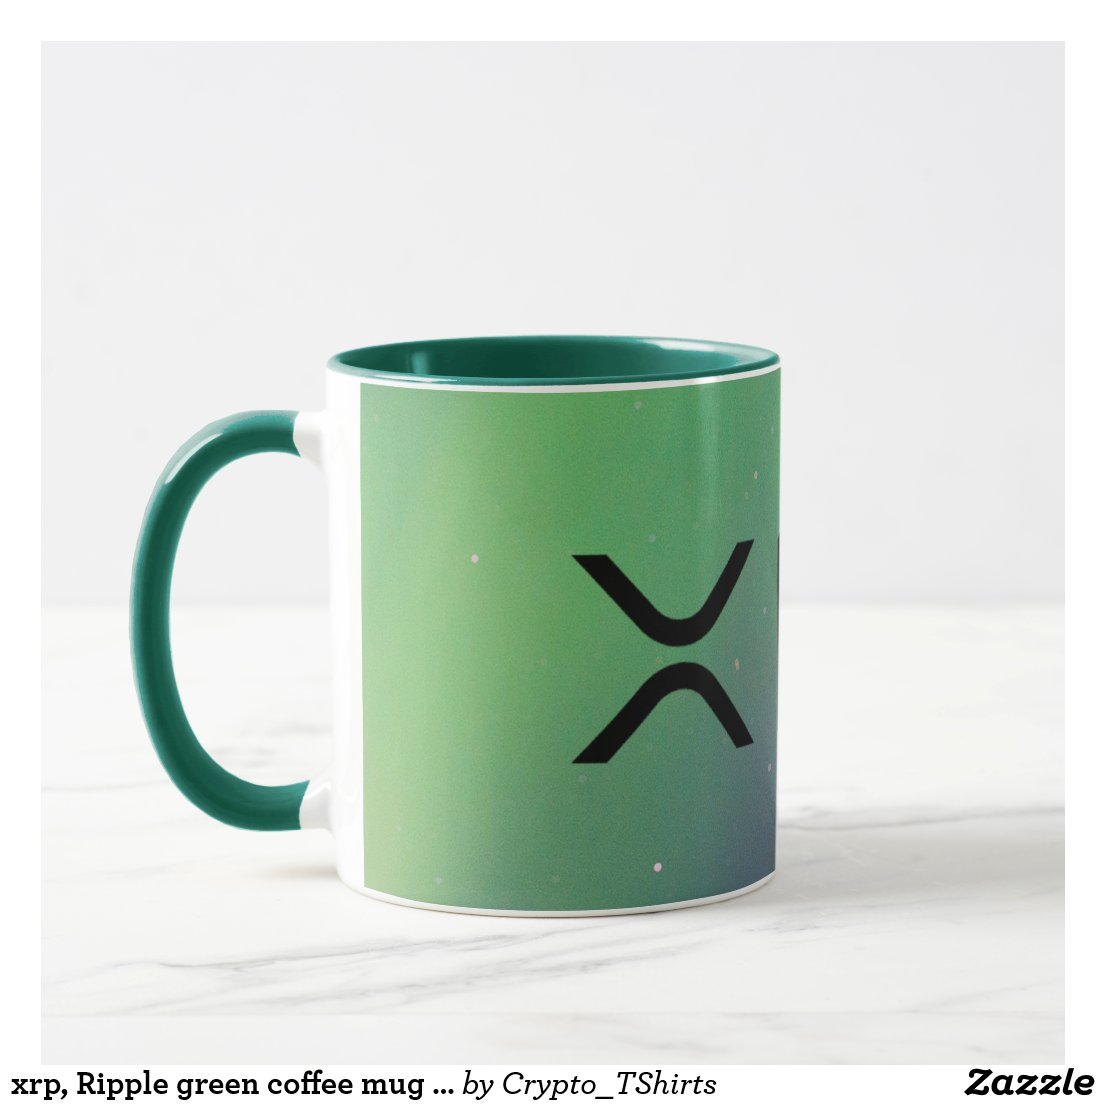 xrp, Ripple green coffee mug / cup